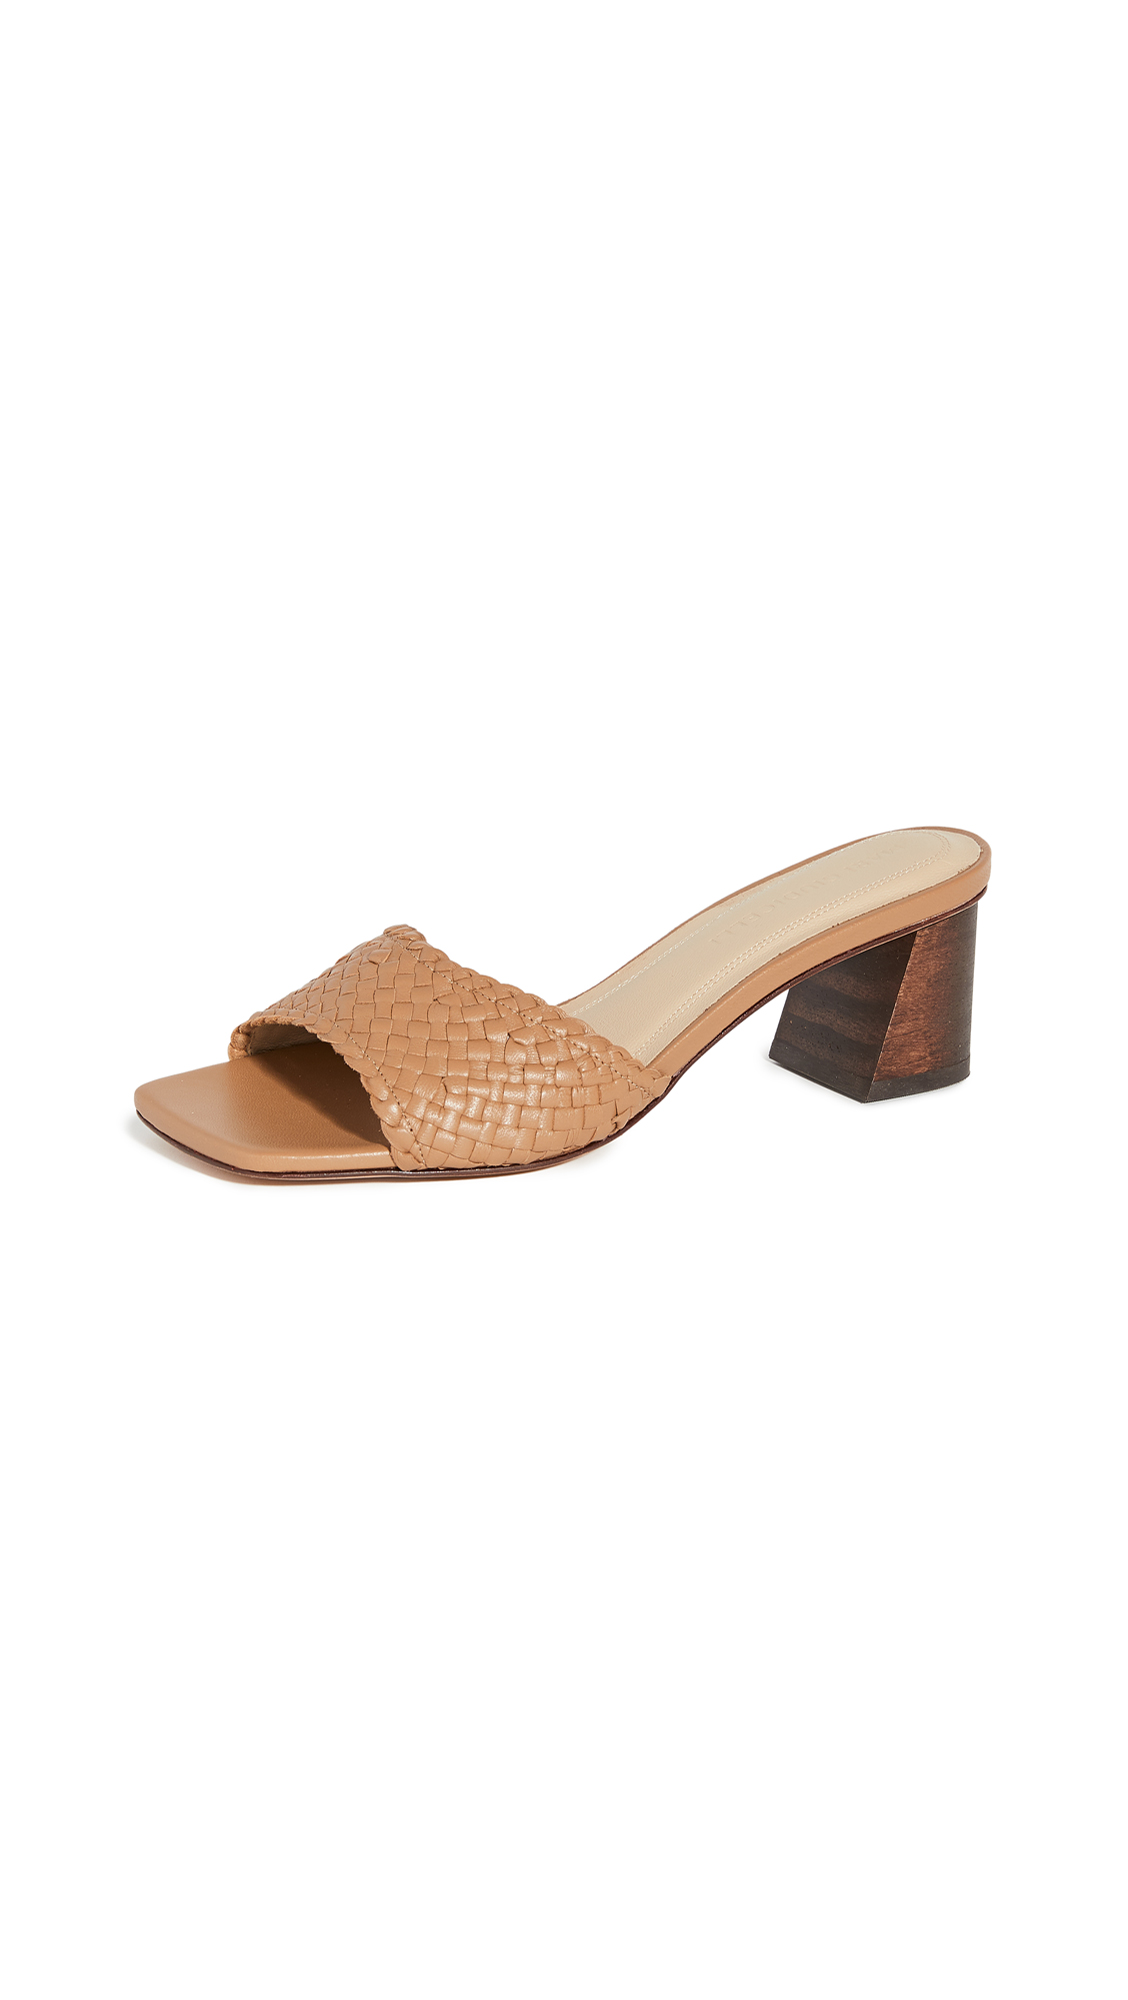 Mari Giudicelli Carmen Sandals - 30% Off Sale